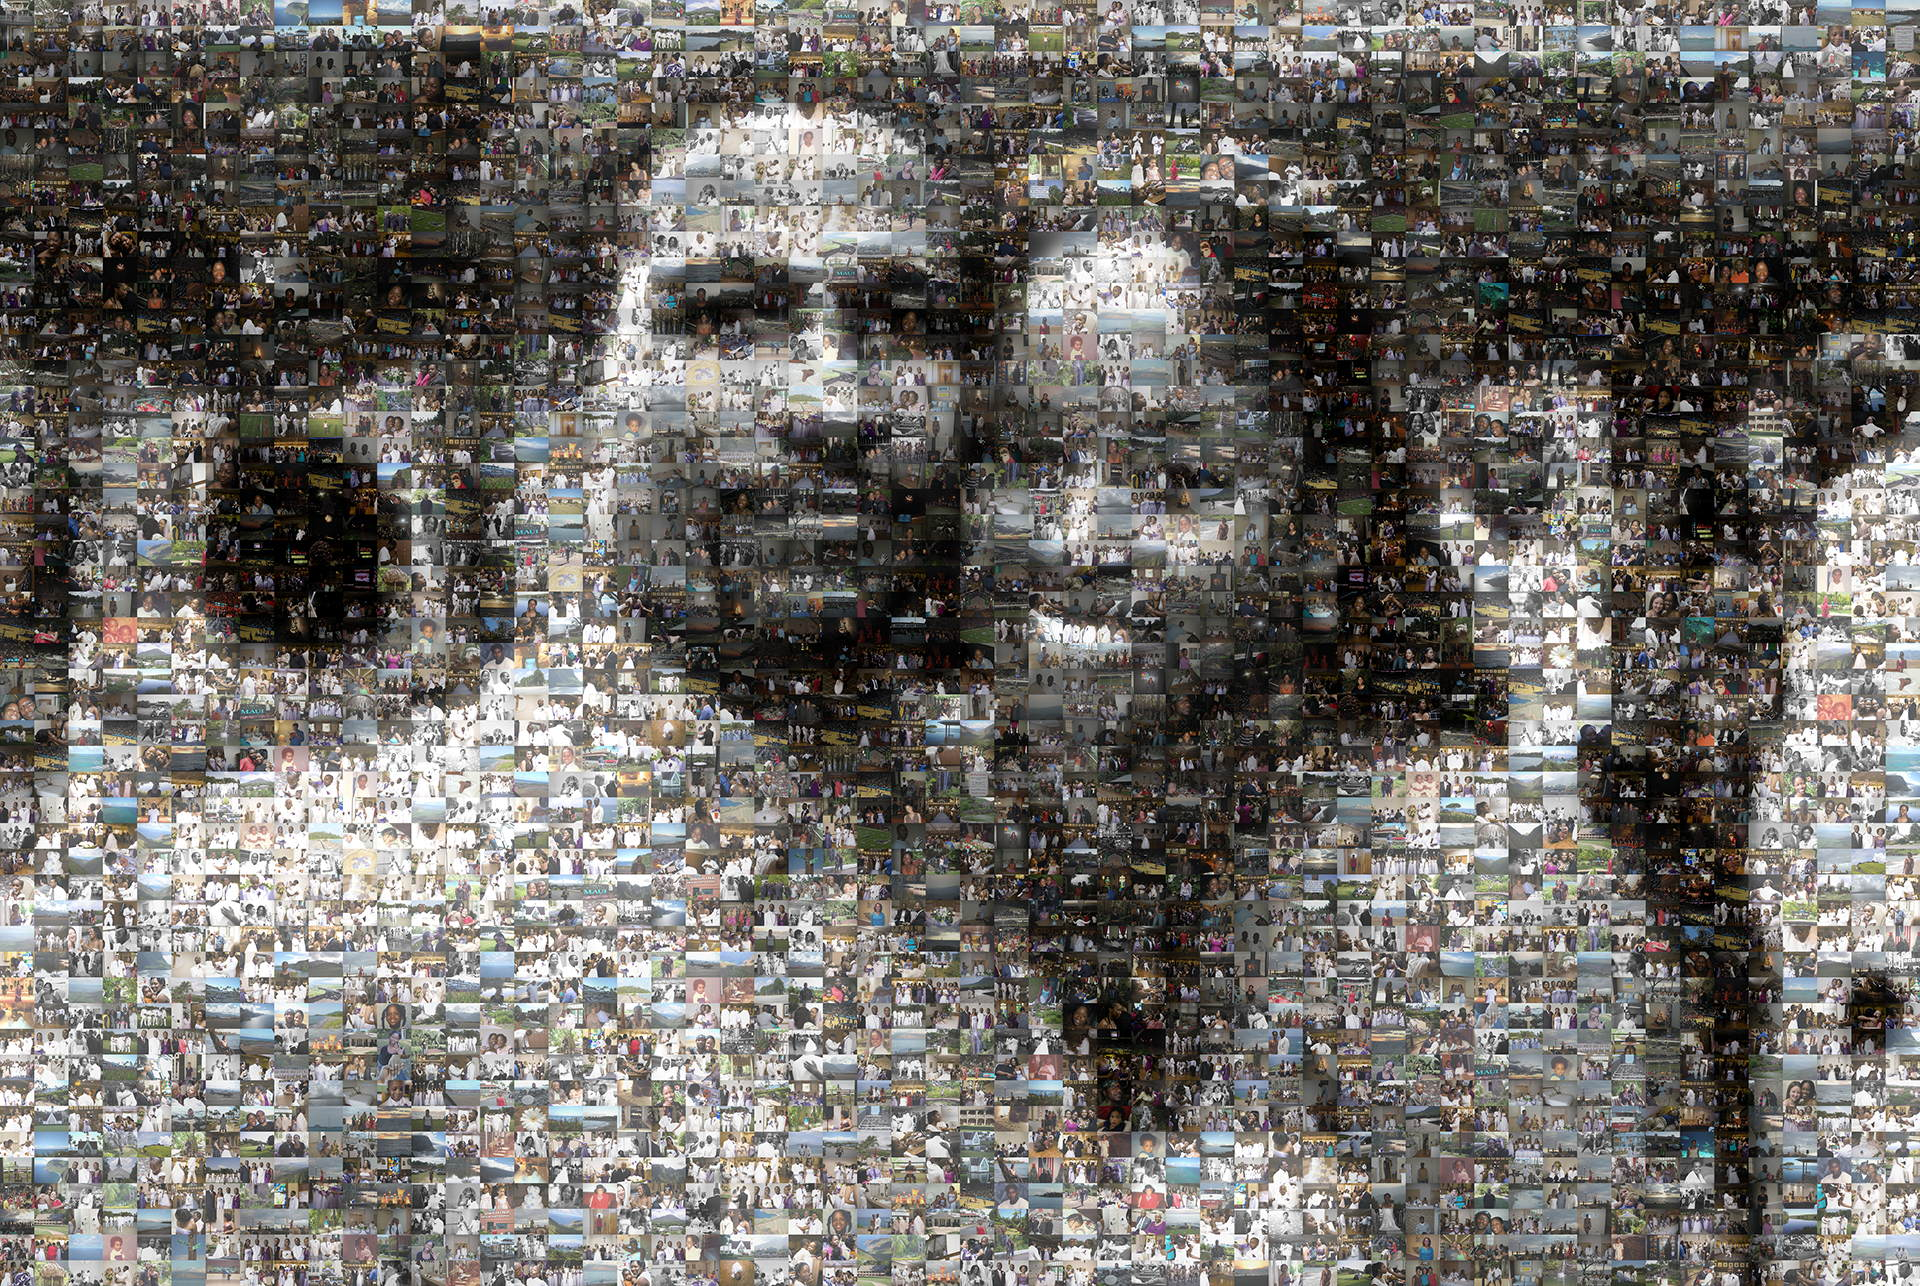 photo mosaic created using 1,177 wedding photos